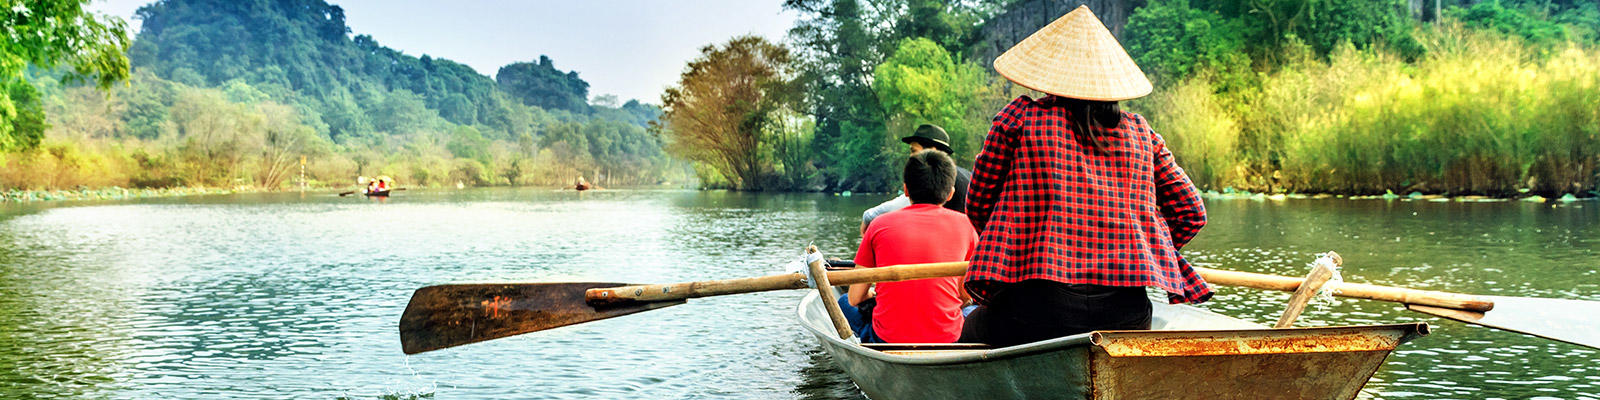 southern-vietnam-dreams-5-top-things-to-do-and-see